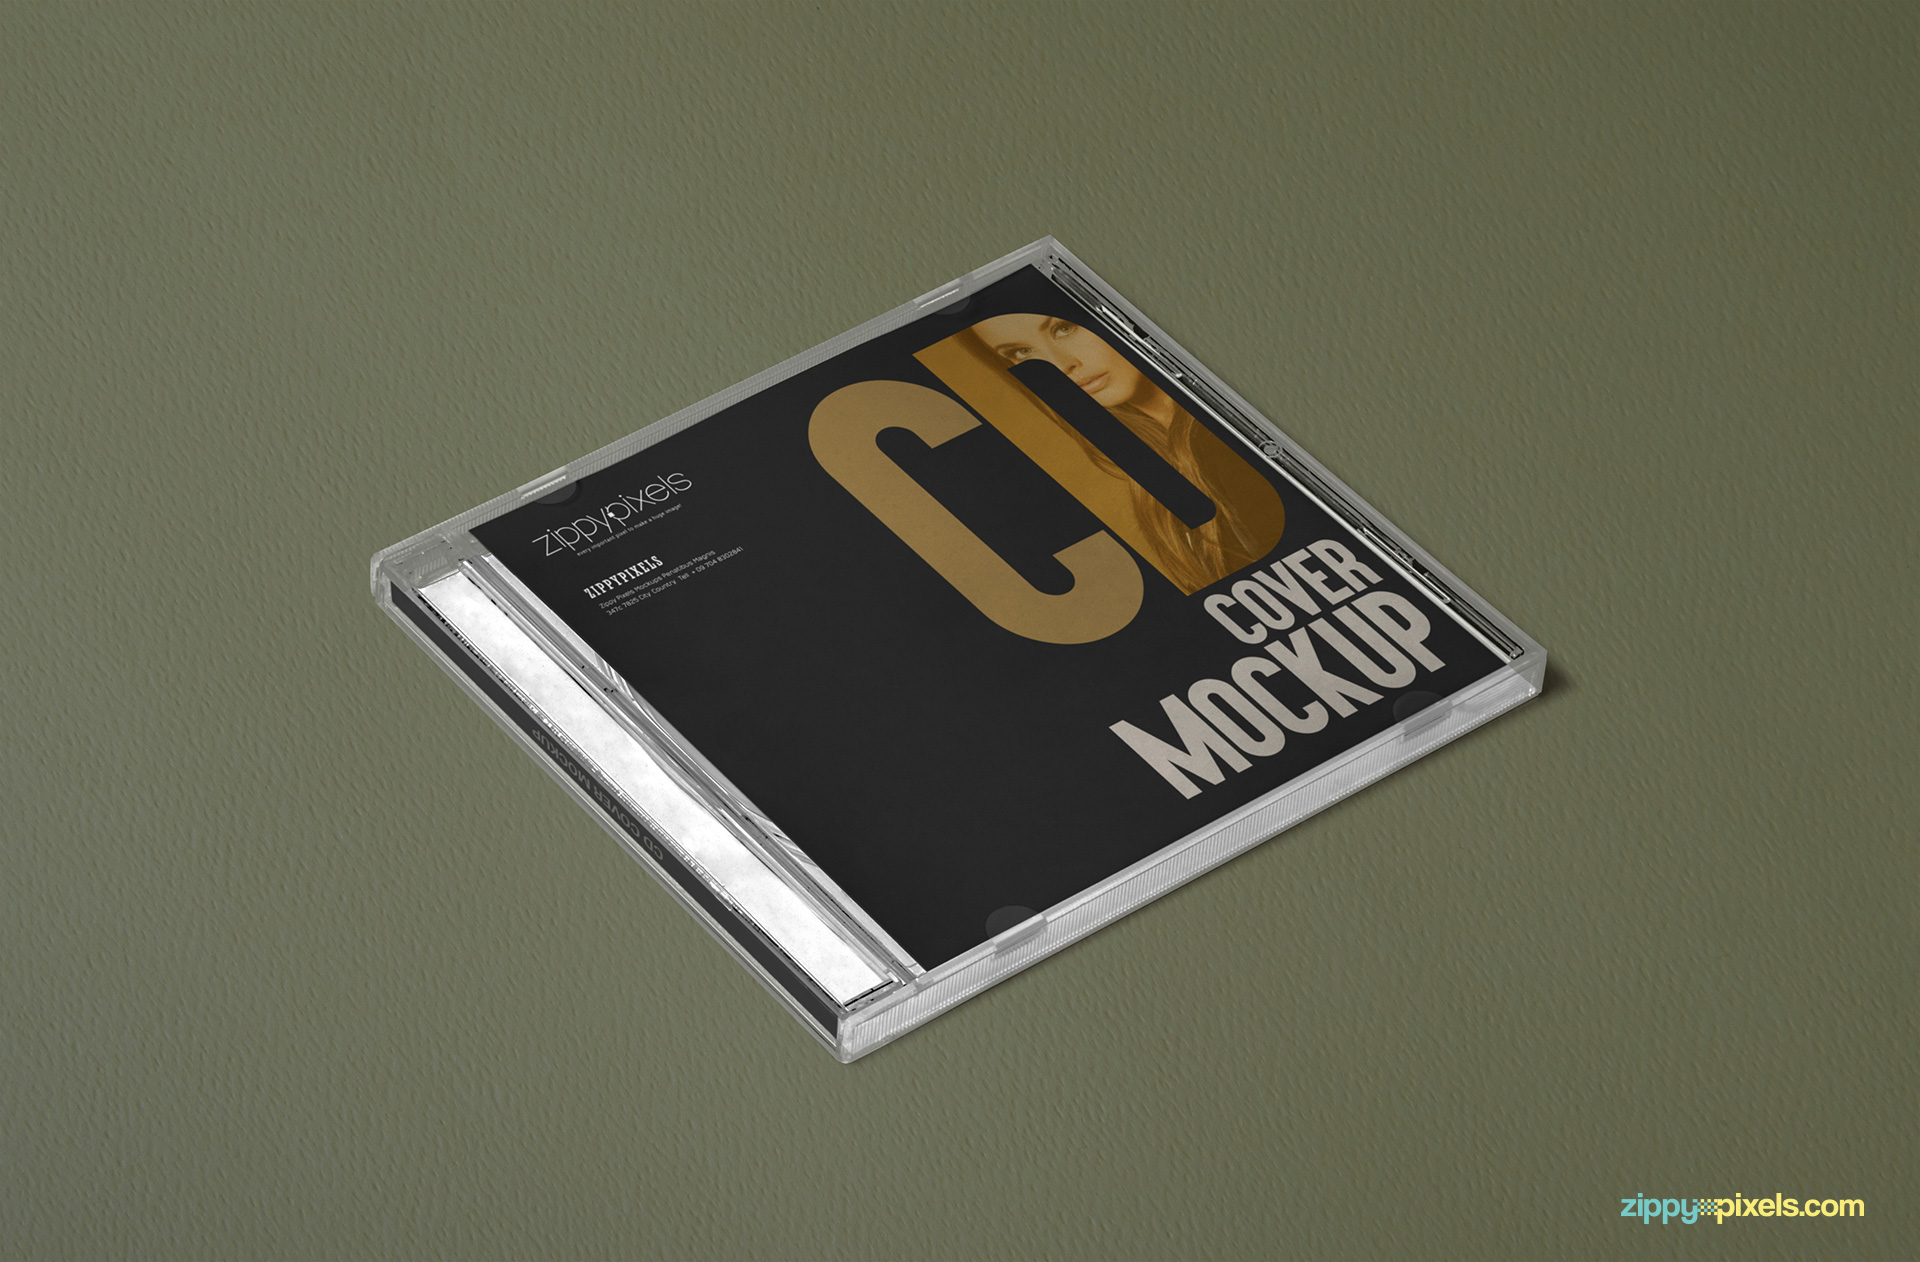 customizable front cover design of the free plastic cd case mock-up